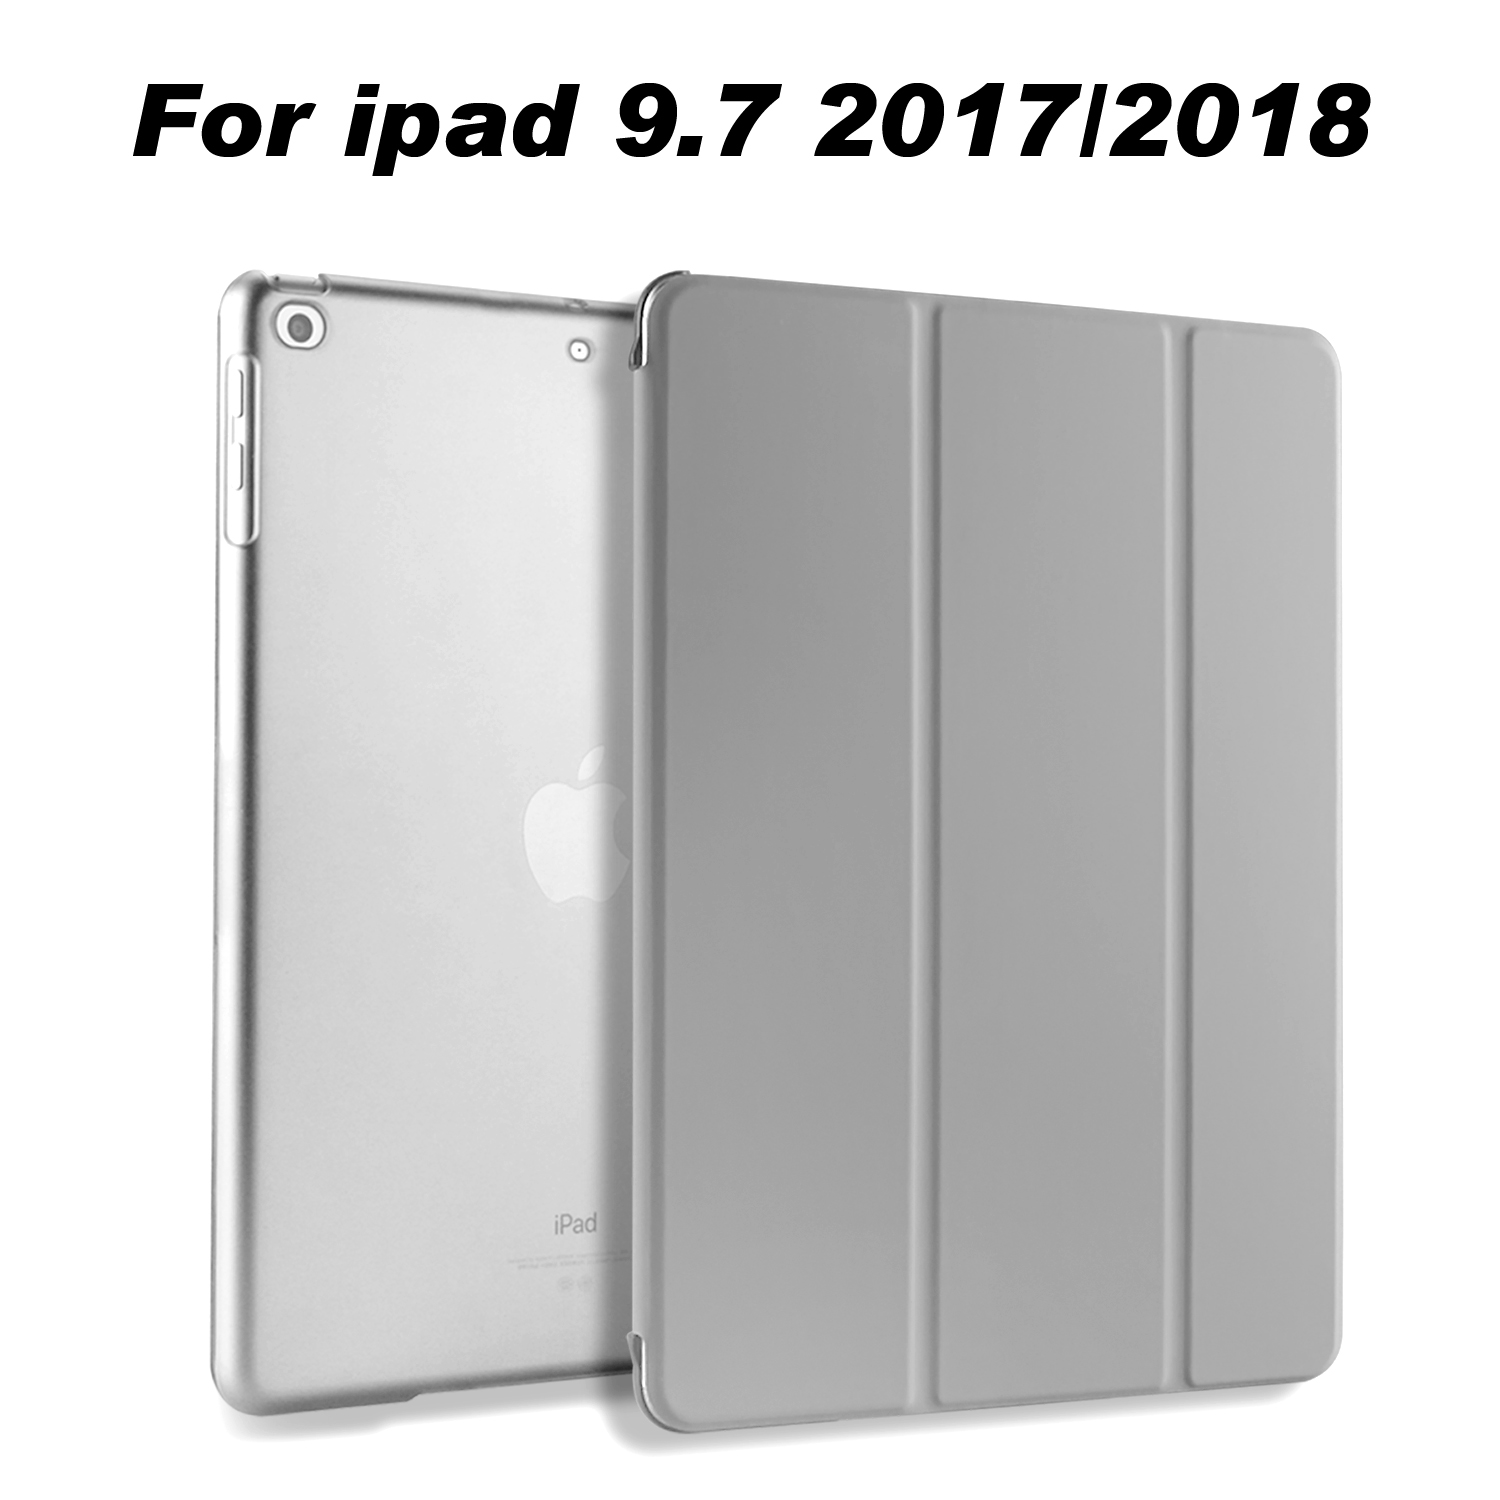 Case for iPad Air Retina cover,Ultra Slim Auto Sleep Cover also for new iPad 9.7 inch 2017&2018 Release.A1822 A1823 A1893 A1954